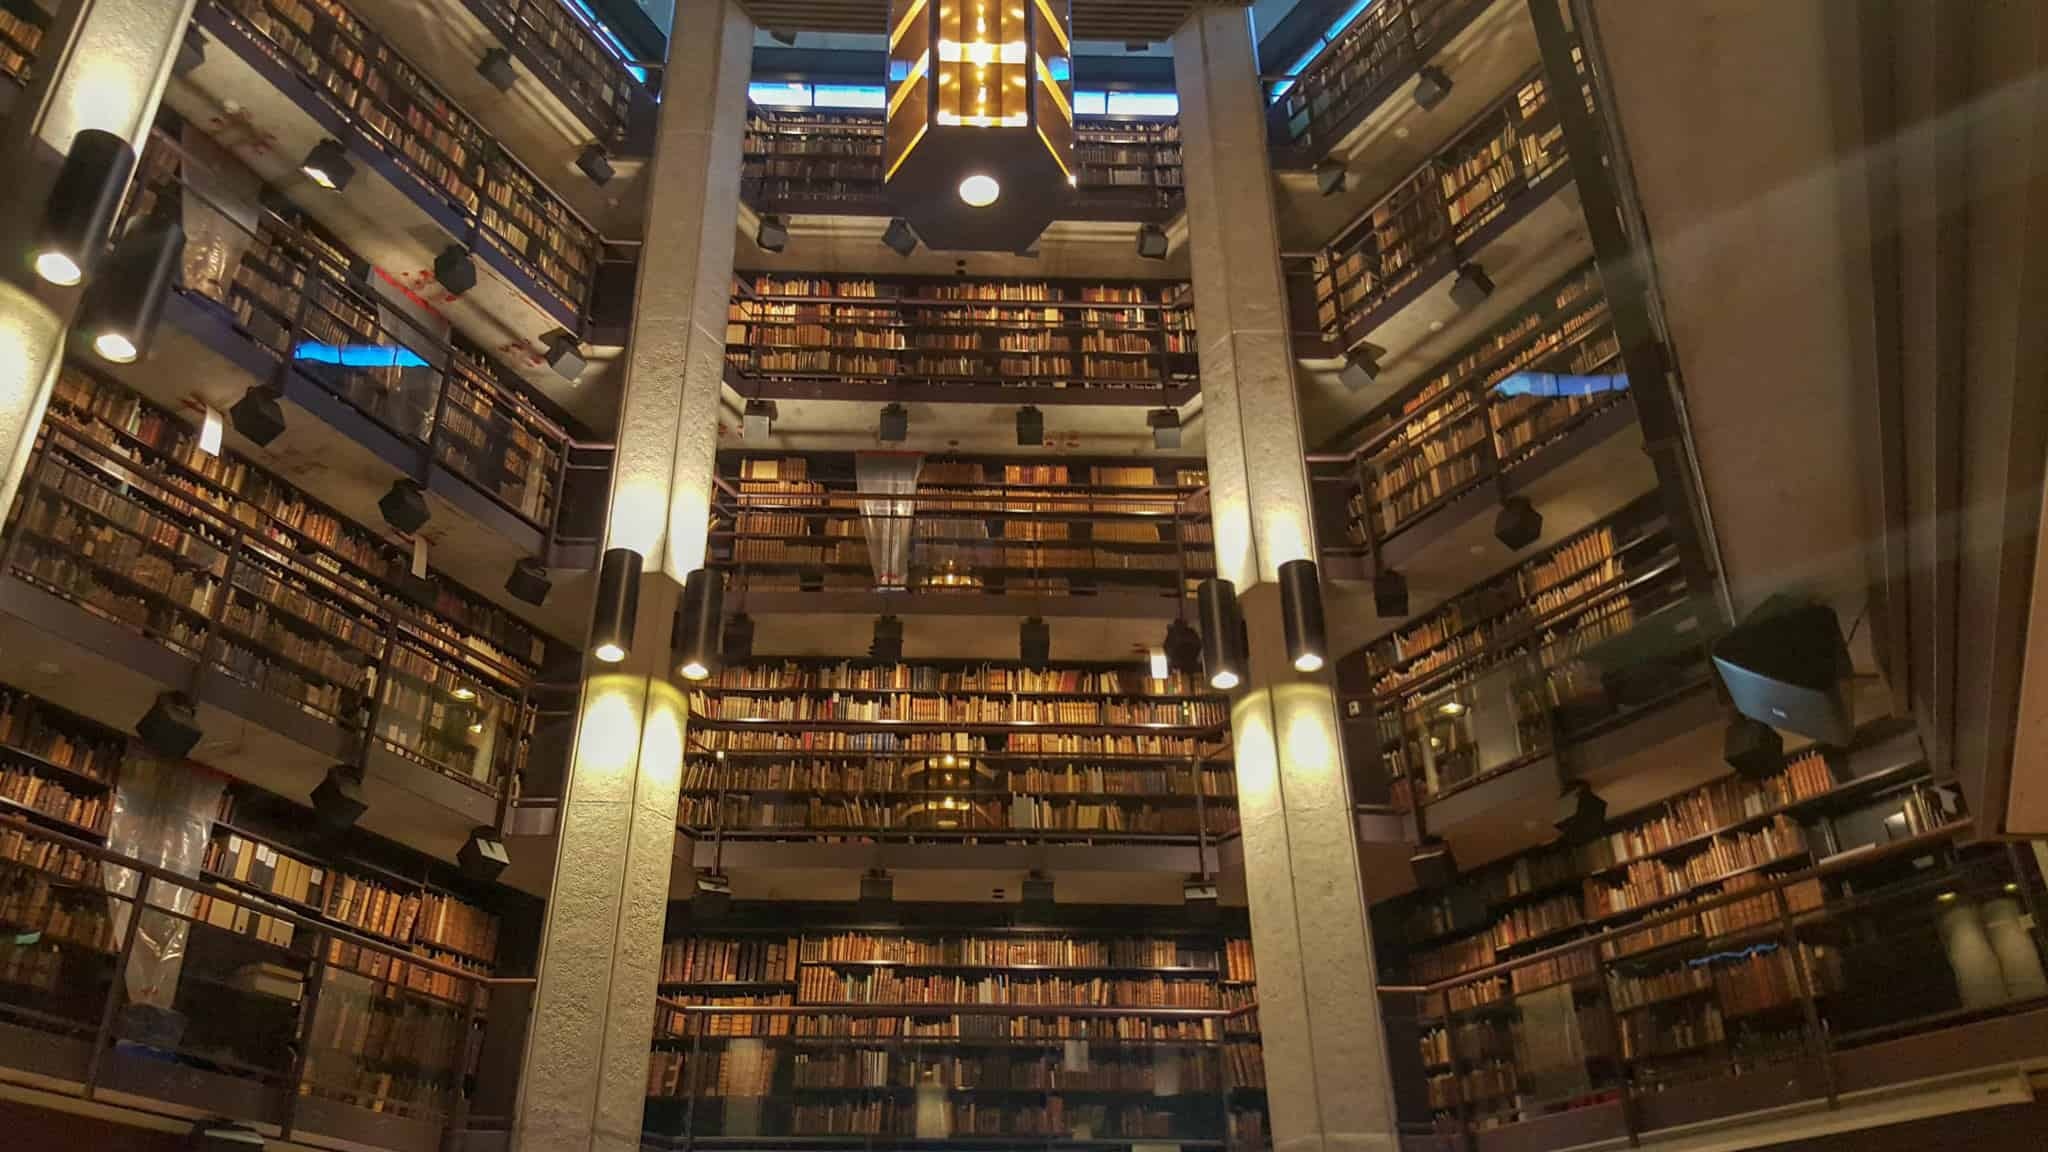 Checking out Thomas Fisher Rare Book Library is one of the free things to do in Toronto